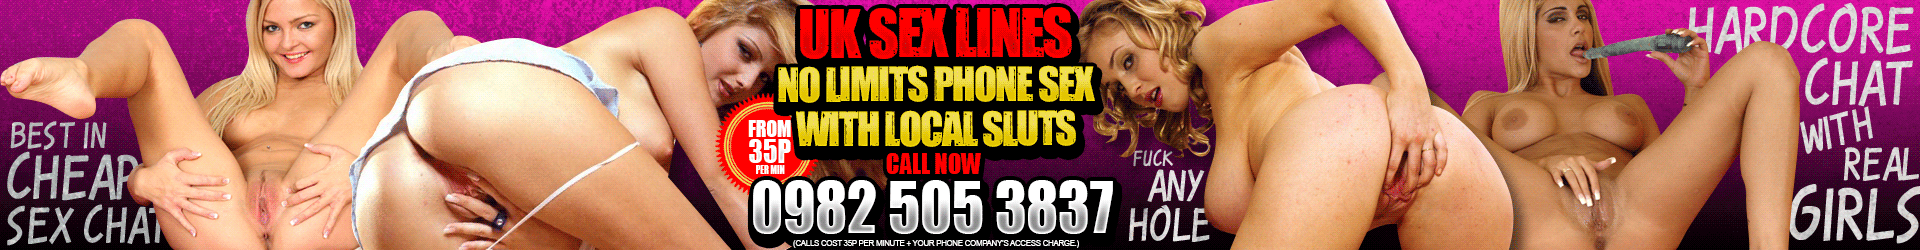 uk-sex-lines-header